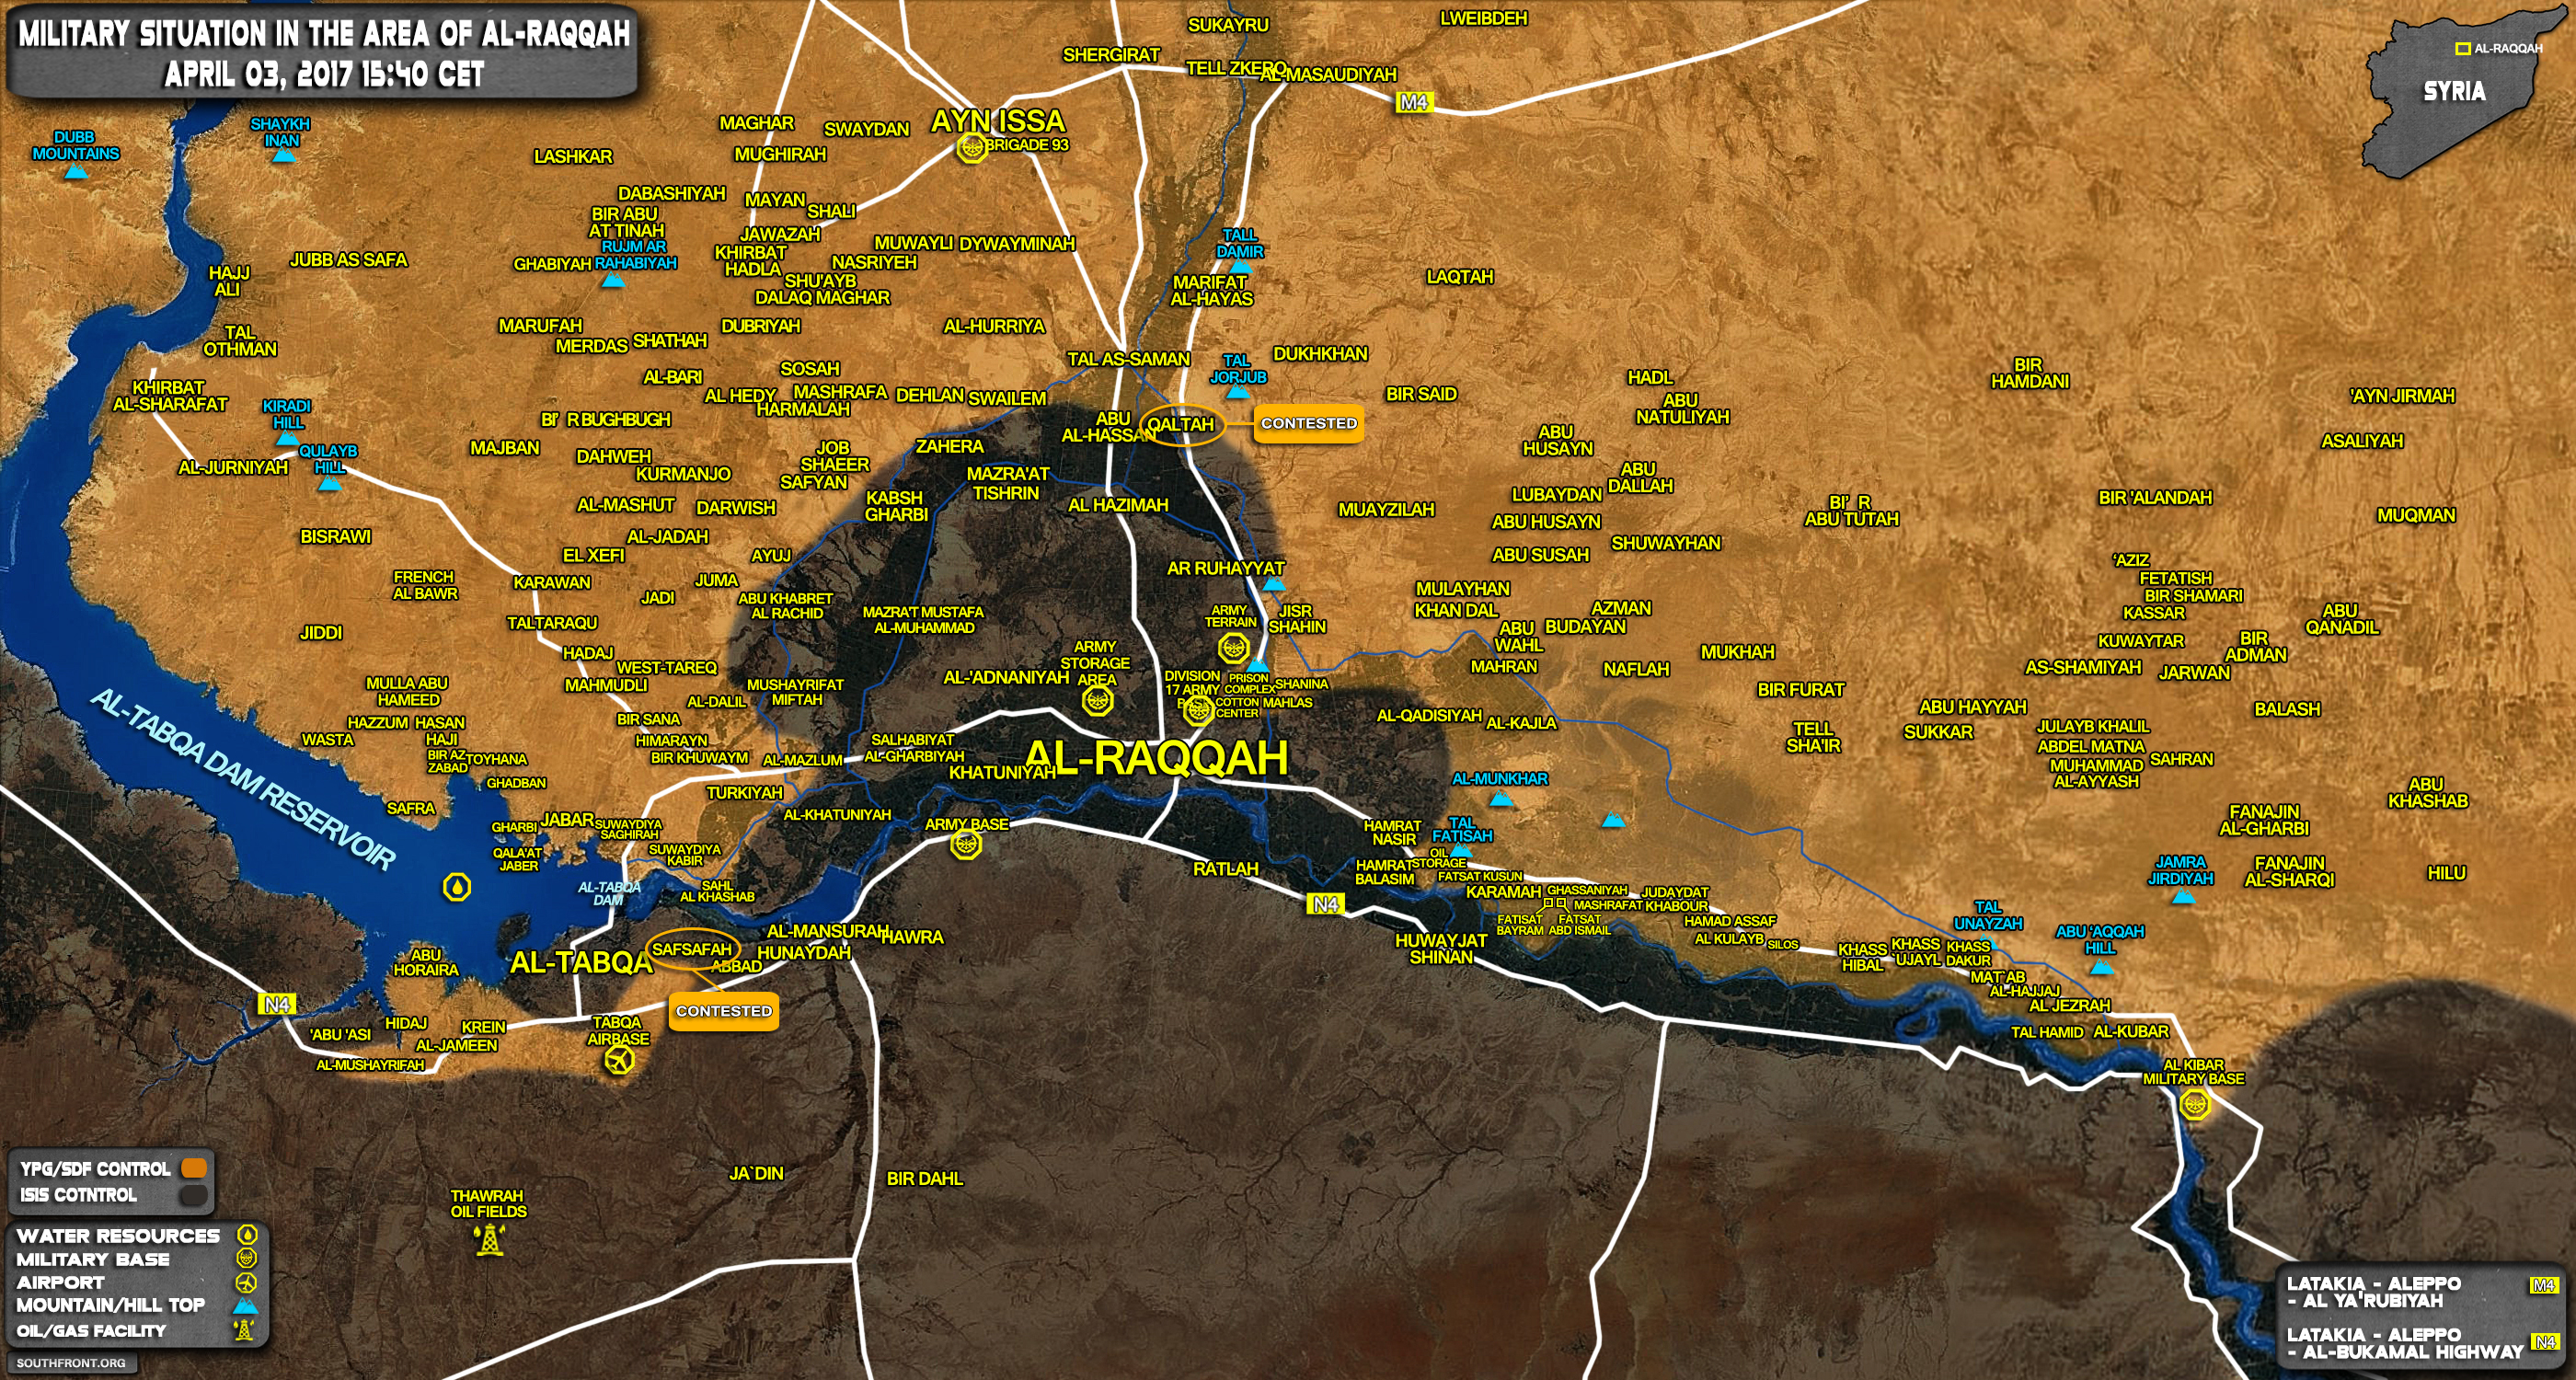 Military Situation In Area Of Raqqah On April 3, 2017 (Syria Map Update)